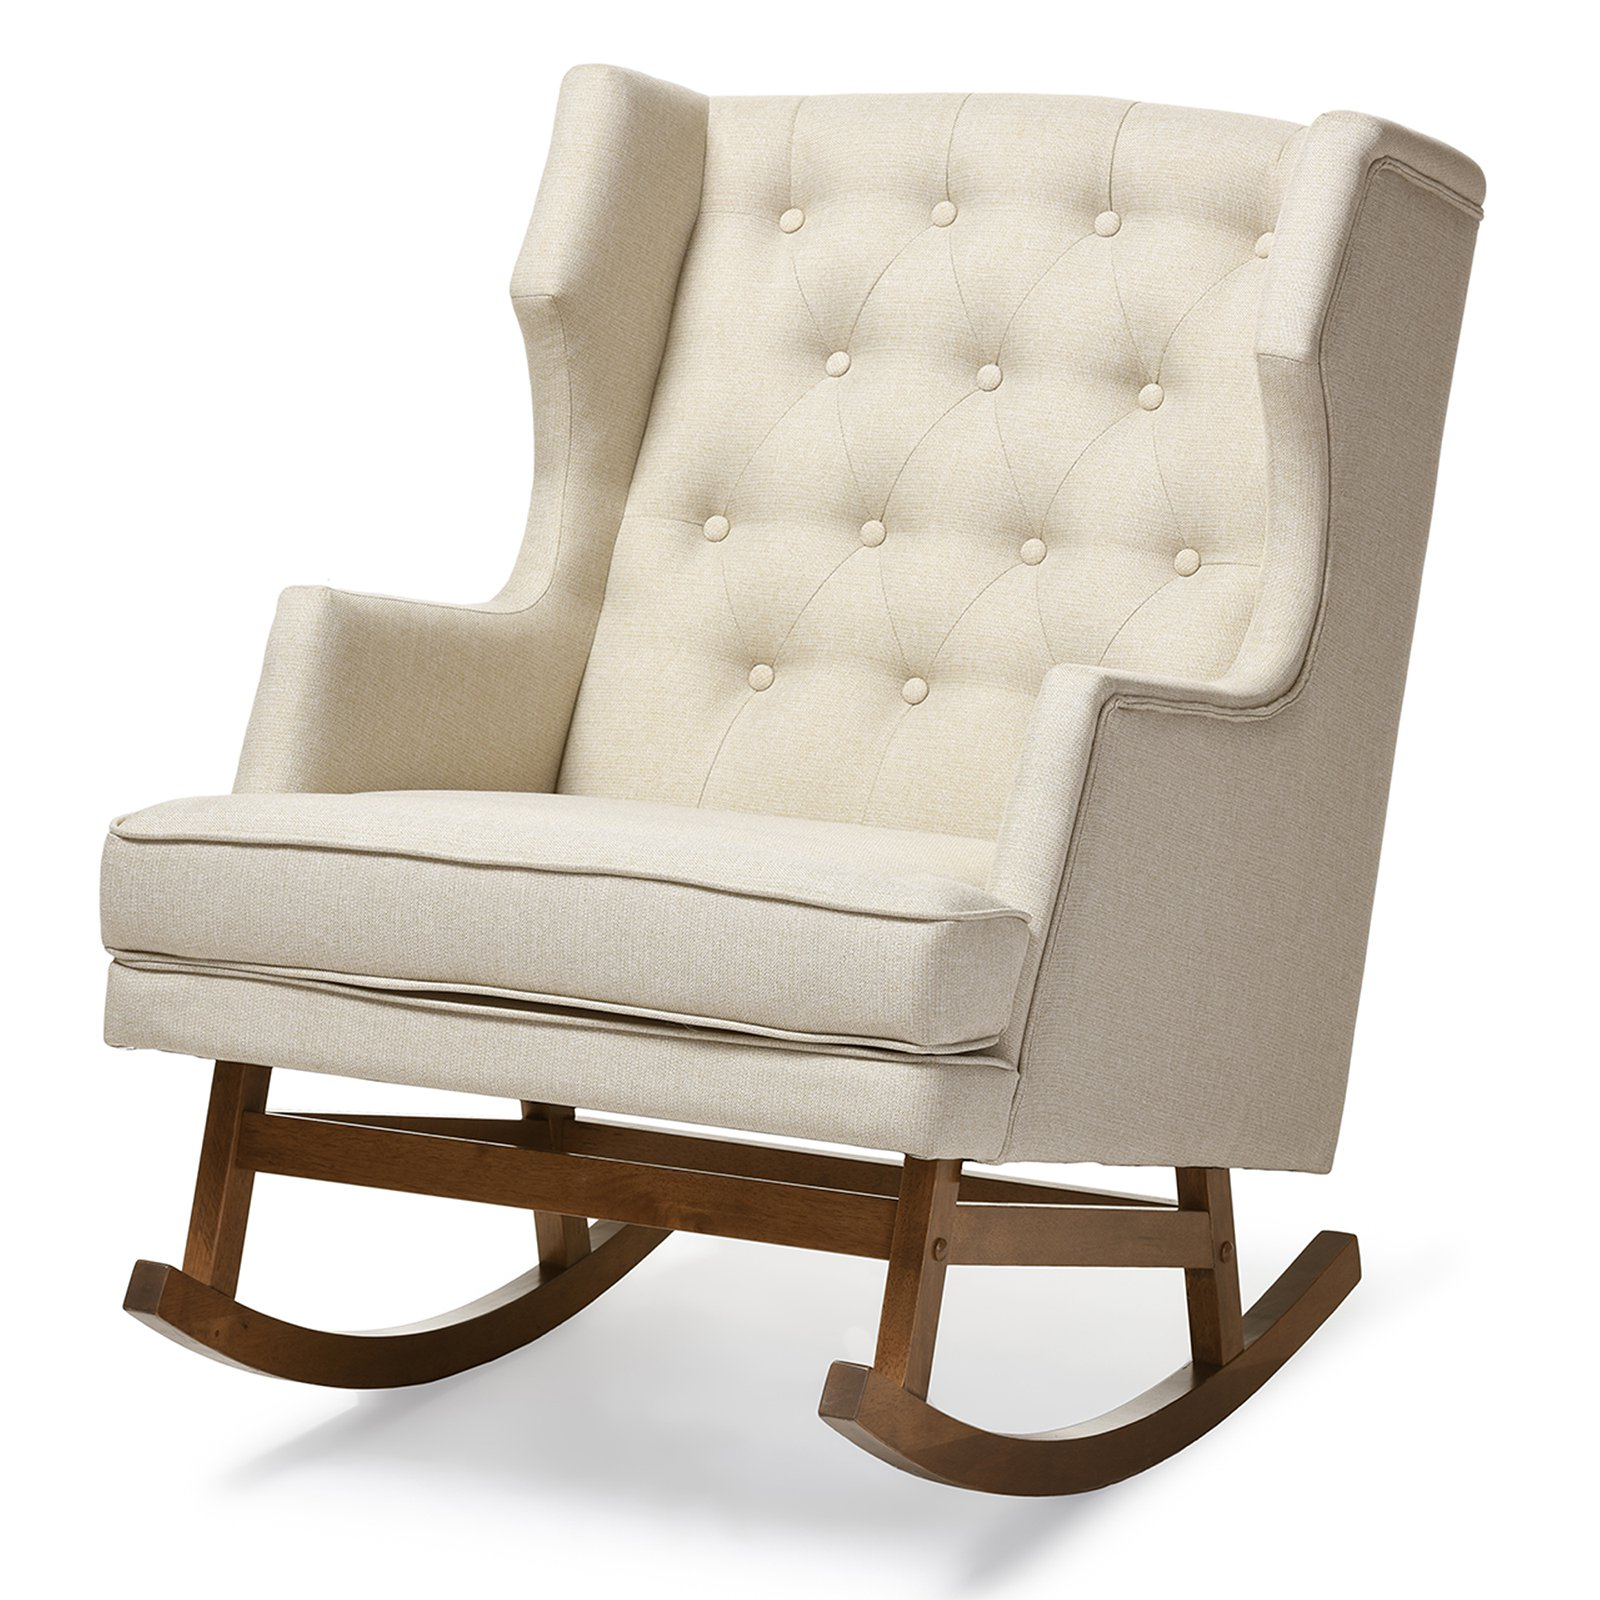 Baxton Studio Iona Mid-century Retro Modern Wingback Rocking Chair by Wholesale Interiors